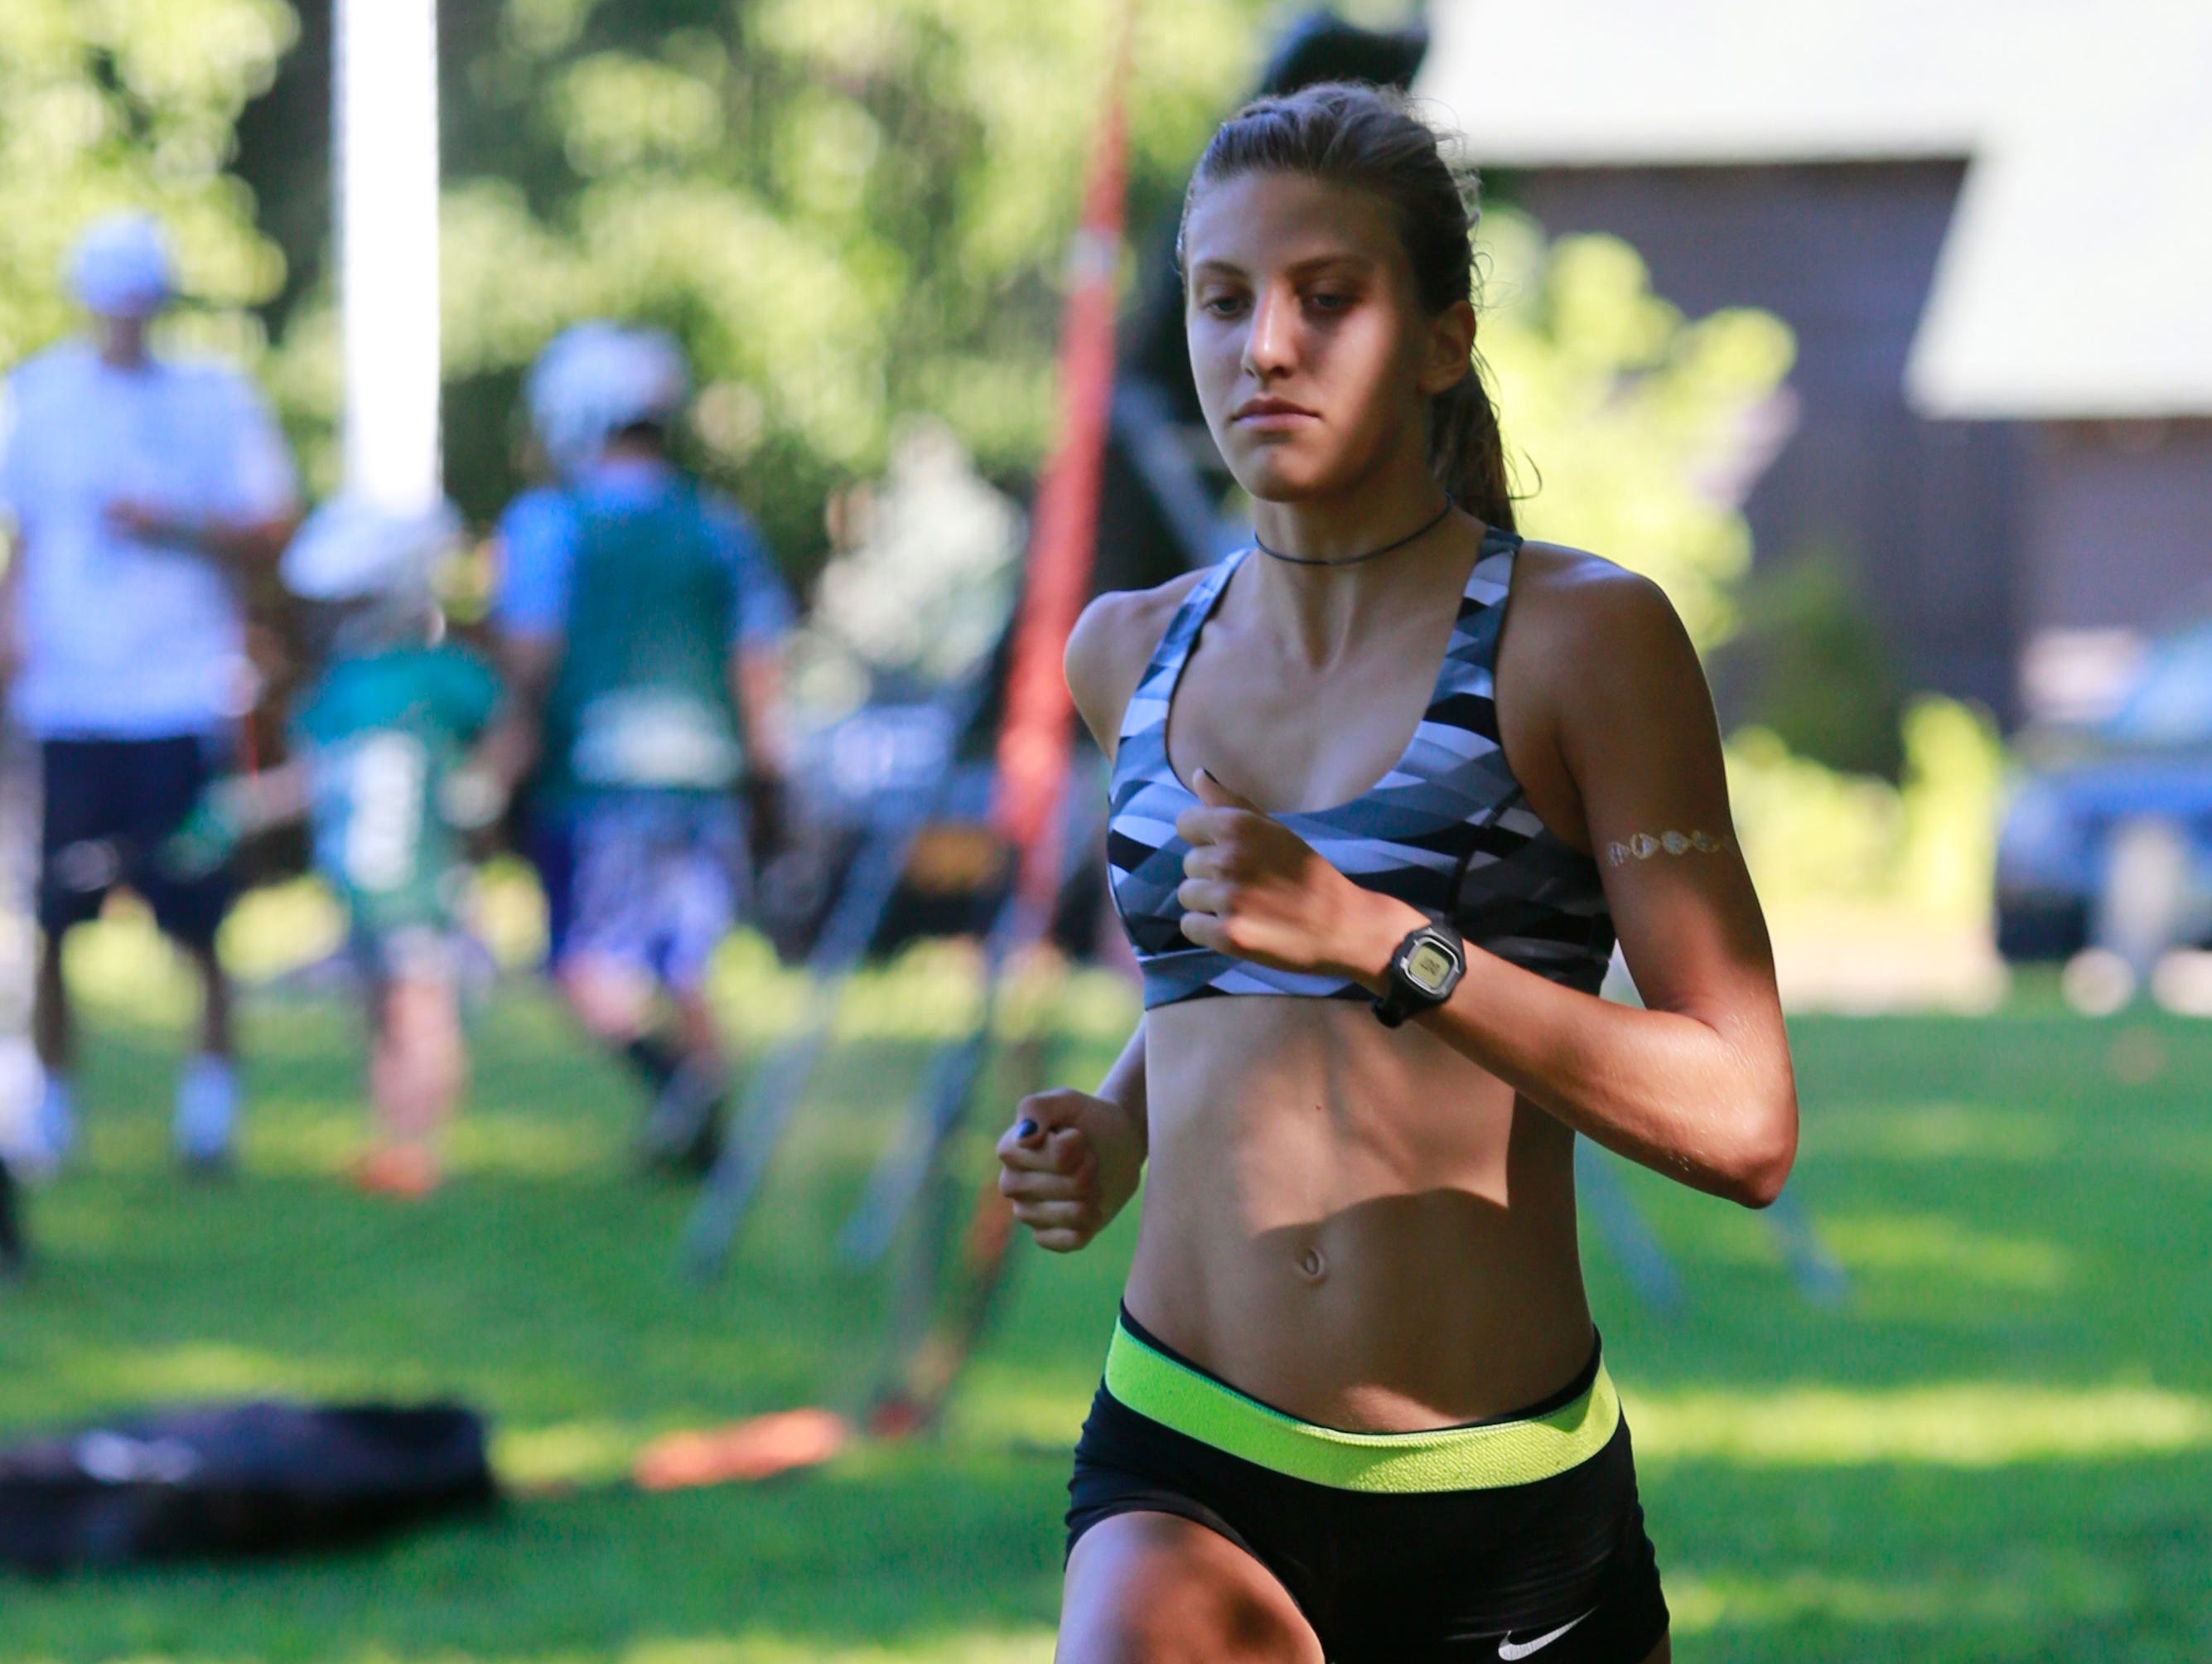 Bronxville Kate Ryan trains with the Cross Country team at Scout Field in Bronxville on Aug. 23, 2016.